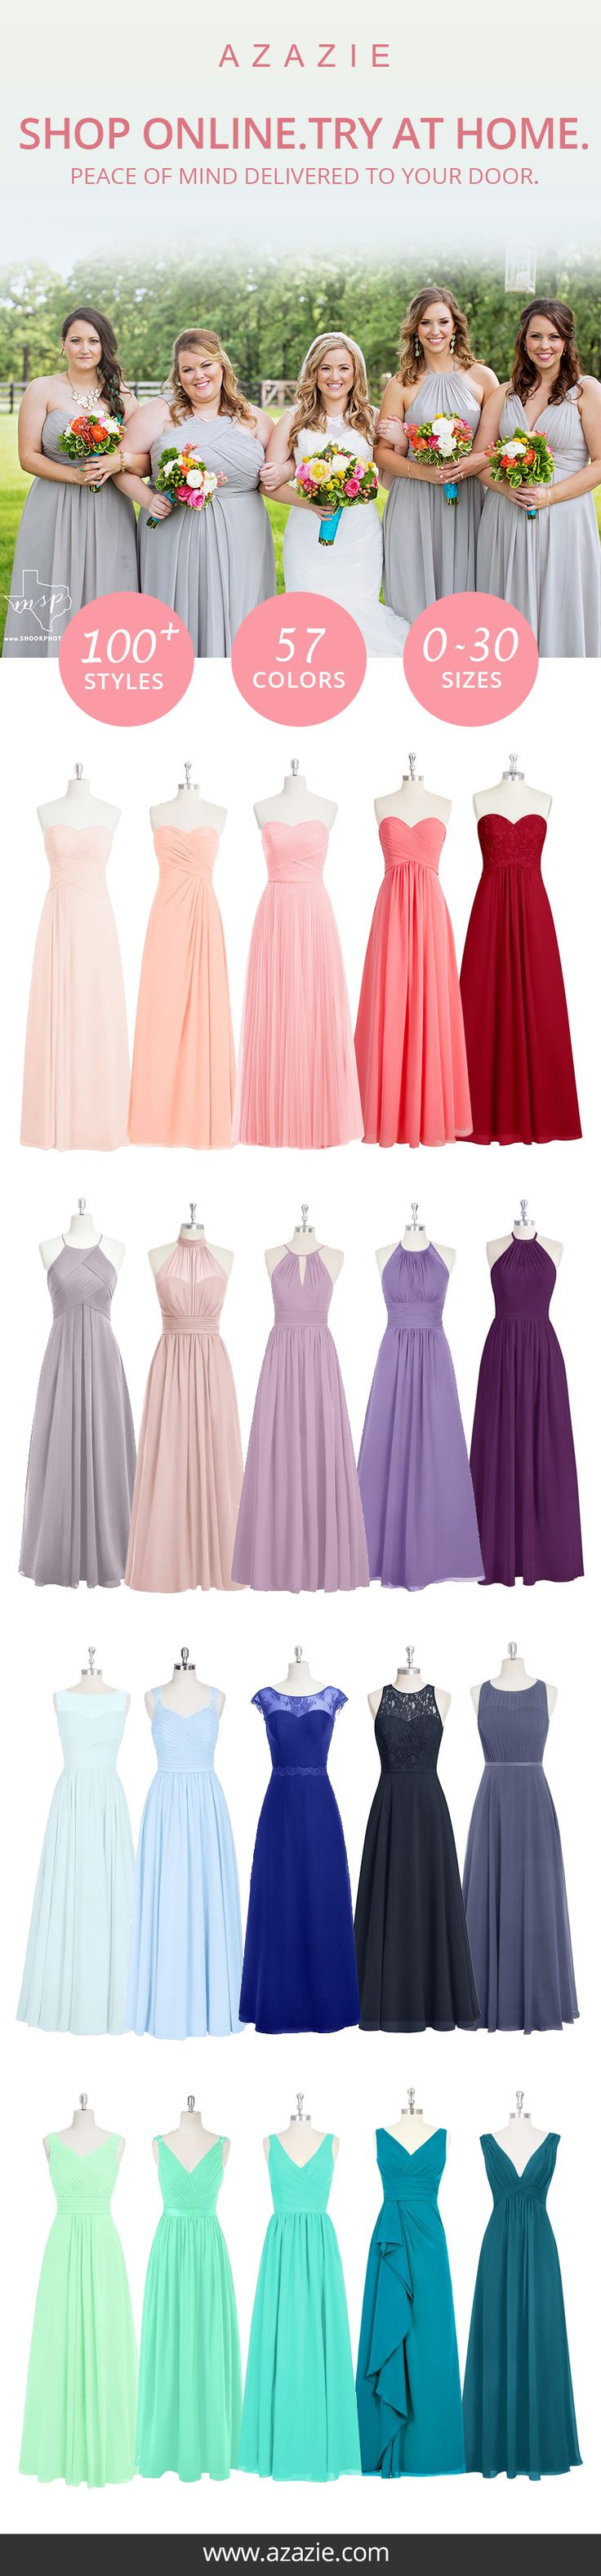 On the quest for the perfect dress? Experience Azazie's try-on at home service and sample your dress in a laid back environment. Select, try on and return sample dresses for just $10-$25 per dress! Over 100 styles, 57 colors and a wide range of sizes beginning from 0 to 30! Perfect if you are looking for plus sizes!